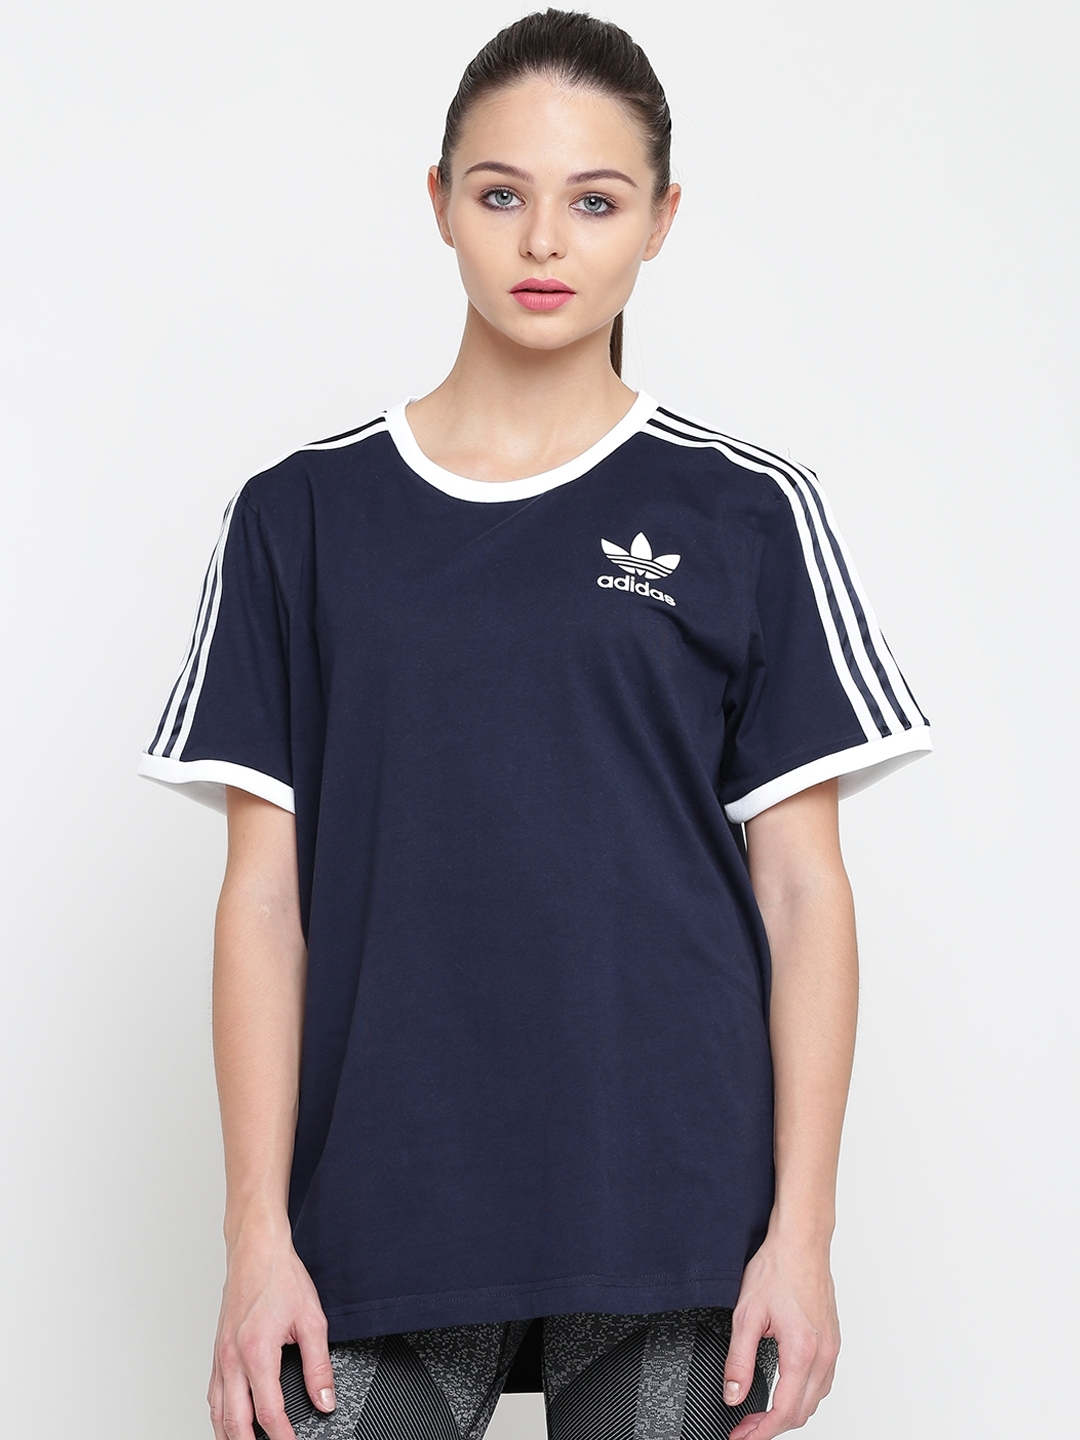 4298727a912 Buy ADIDAS Originals Women Navy Blue 3 Stripes Solid Round Neck T ...